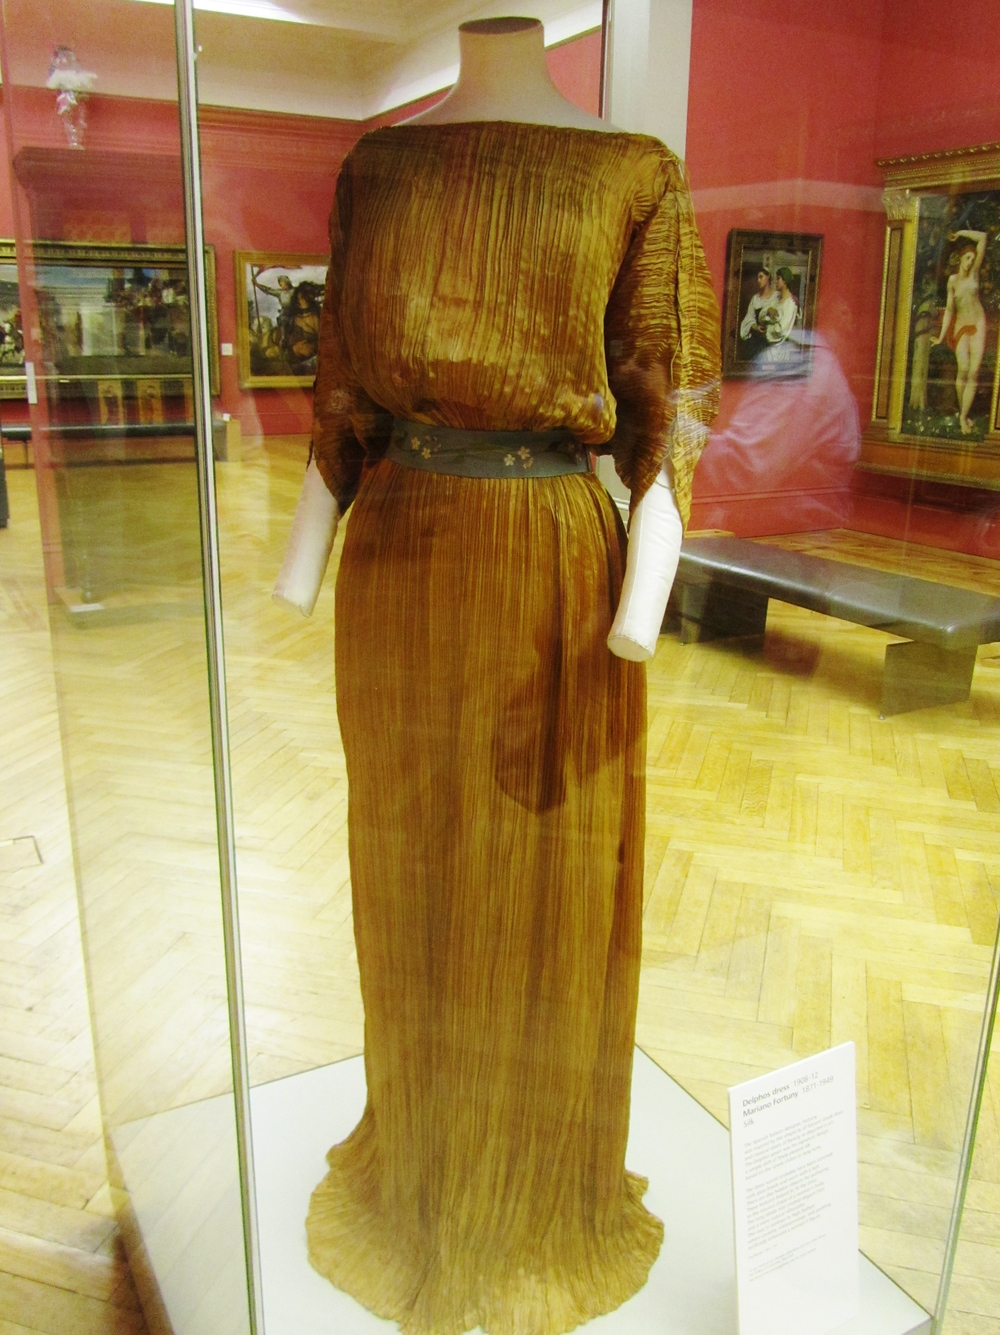 Delphos Dress 1908 - 1912   Mariano Fortuny